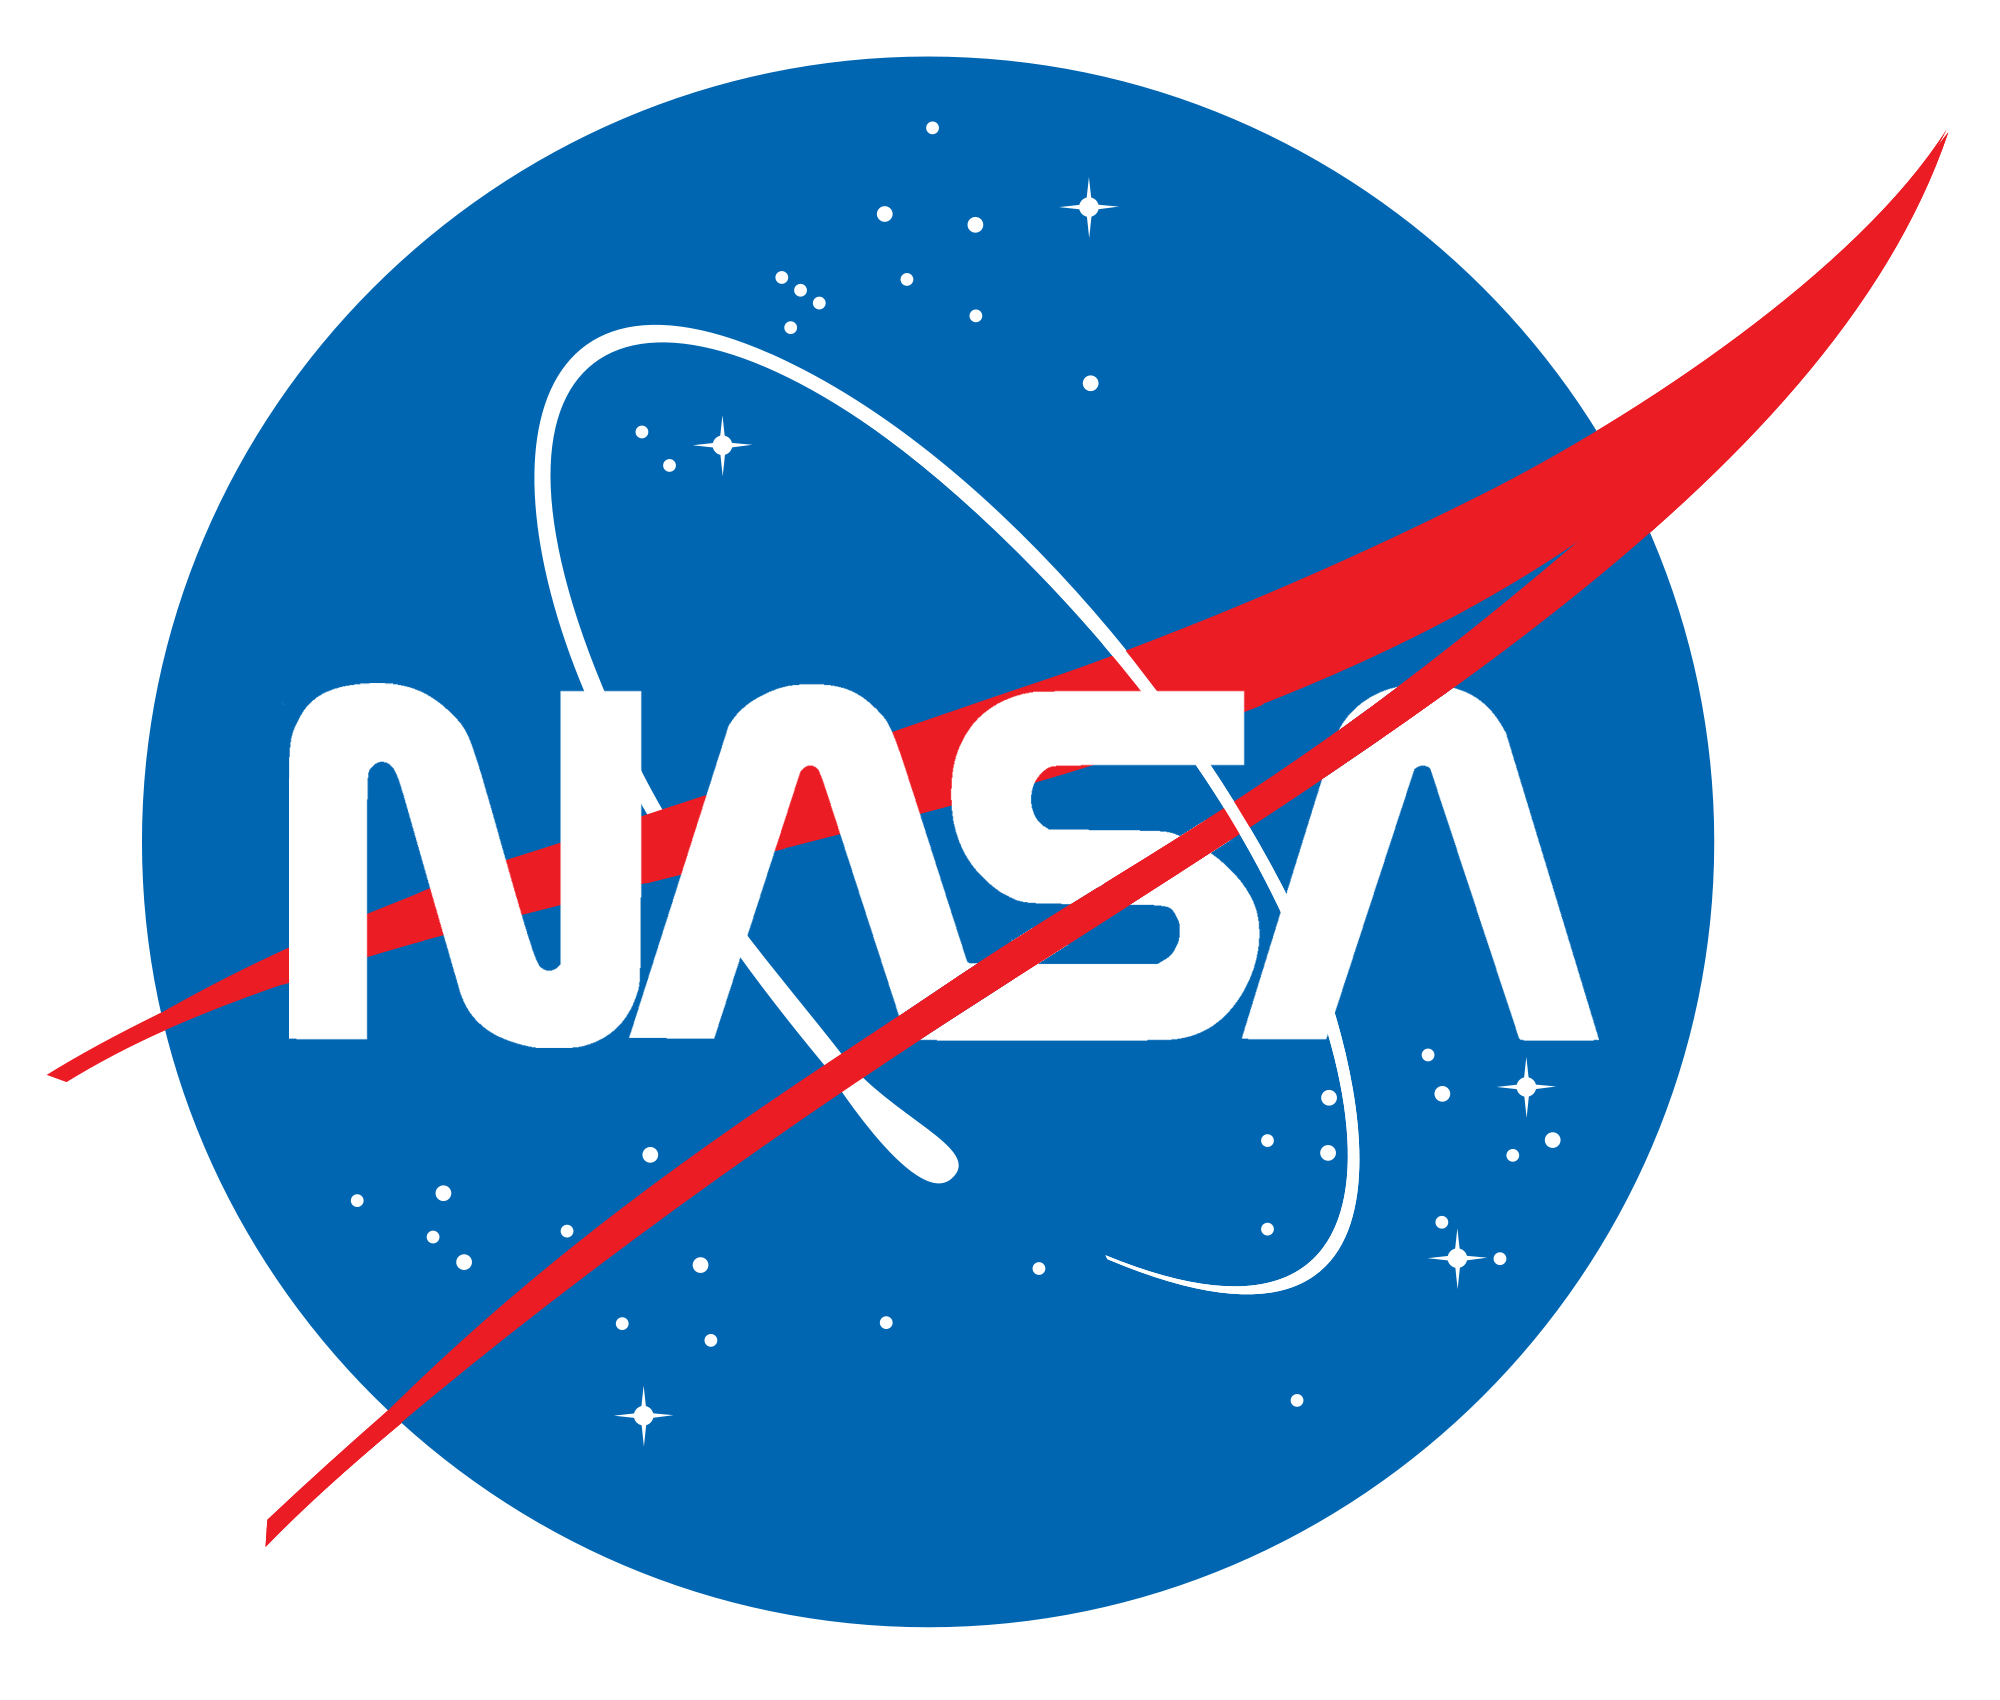 nasa official logo 2017 - photo #9